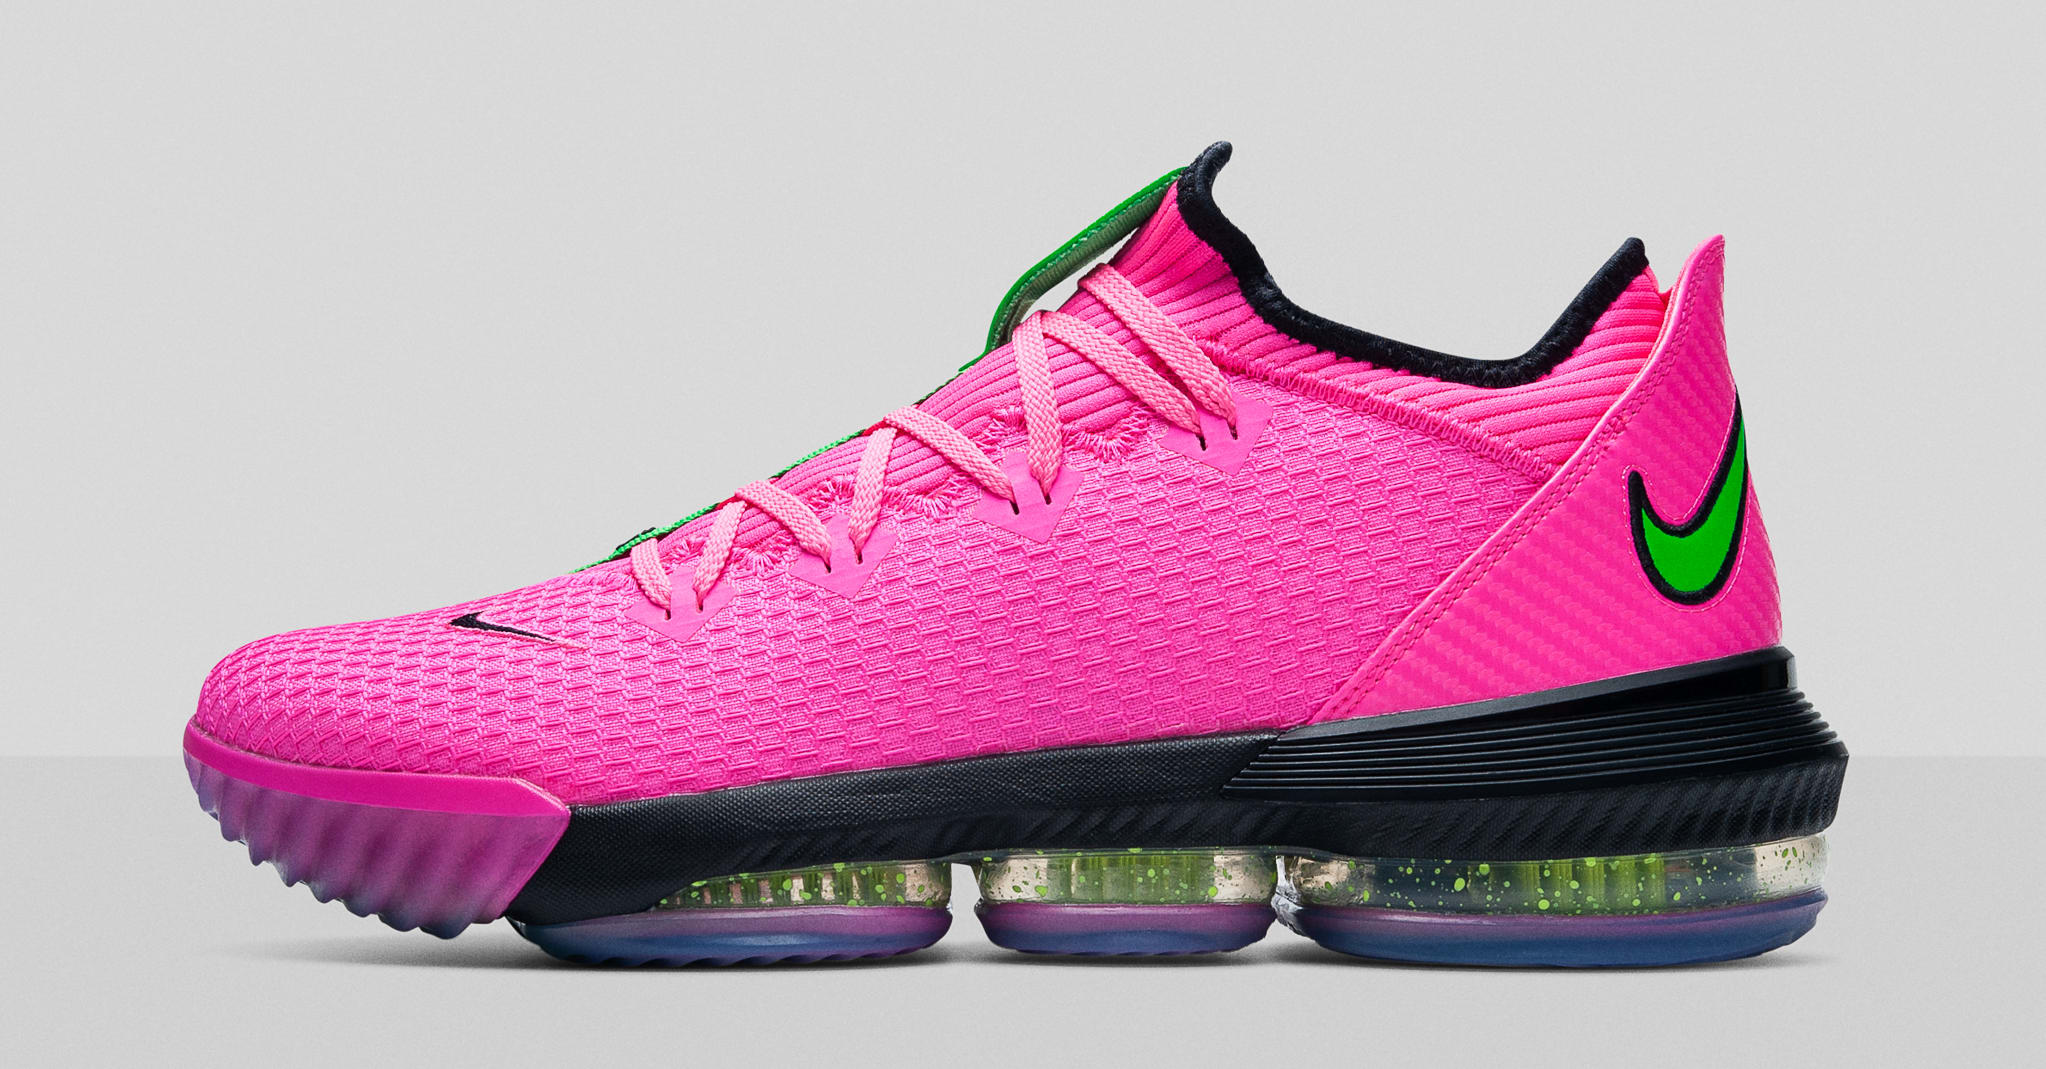 2019 WNBA All-Star Game Nike LeBron 16 Low PE